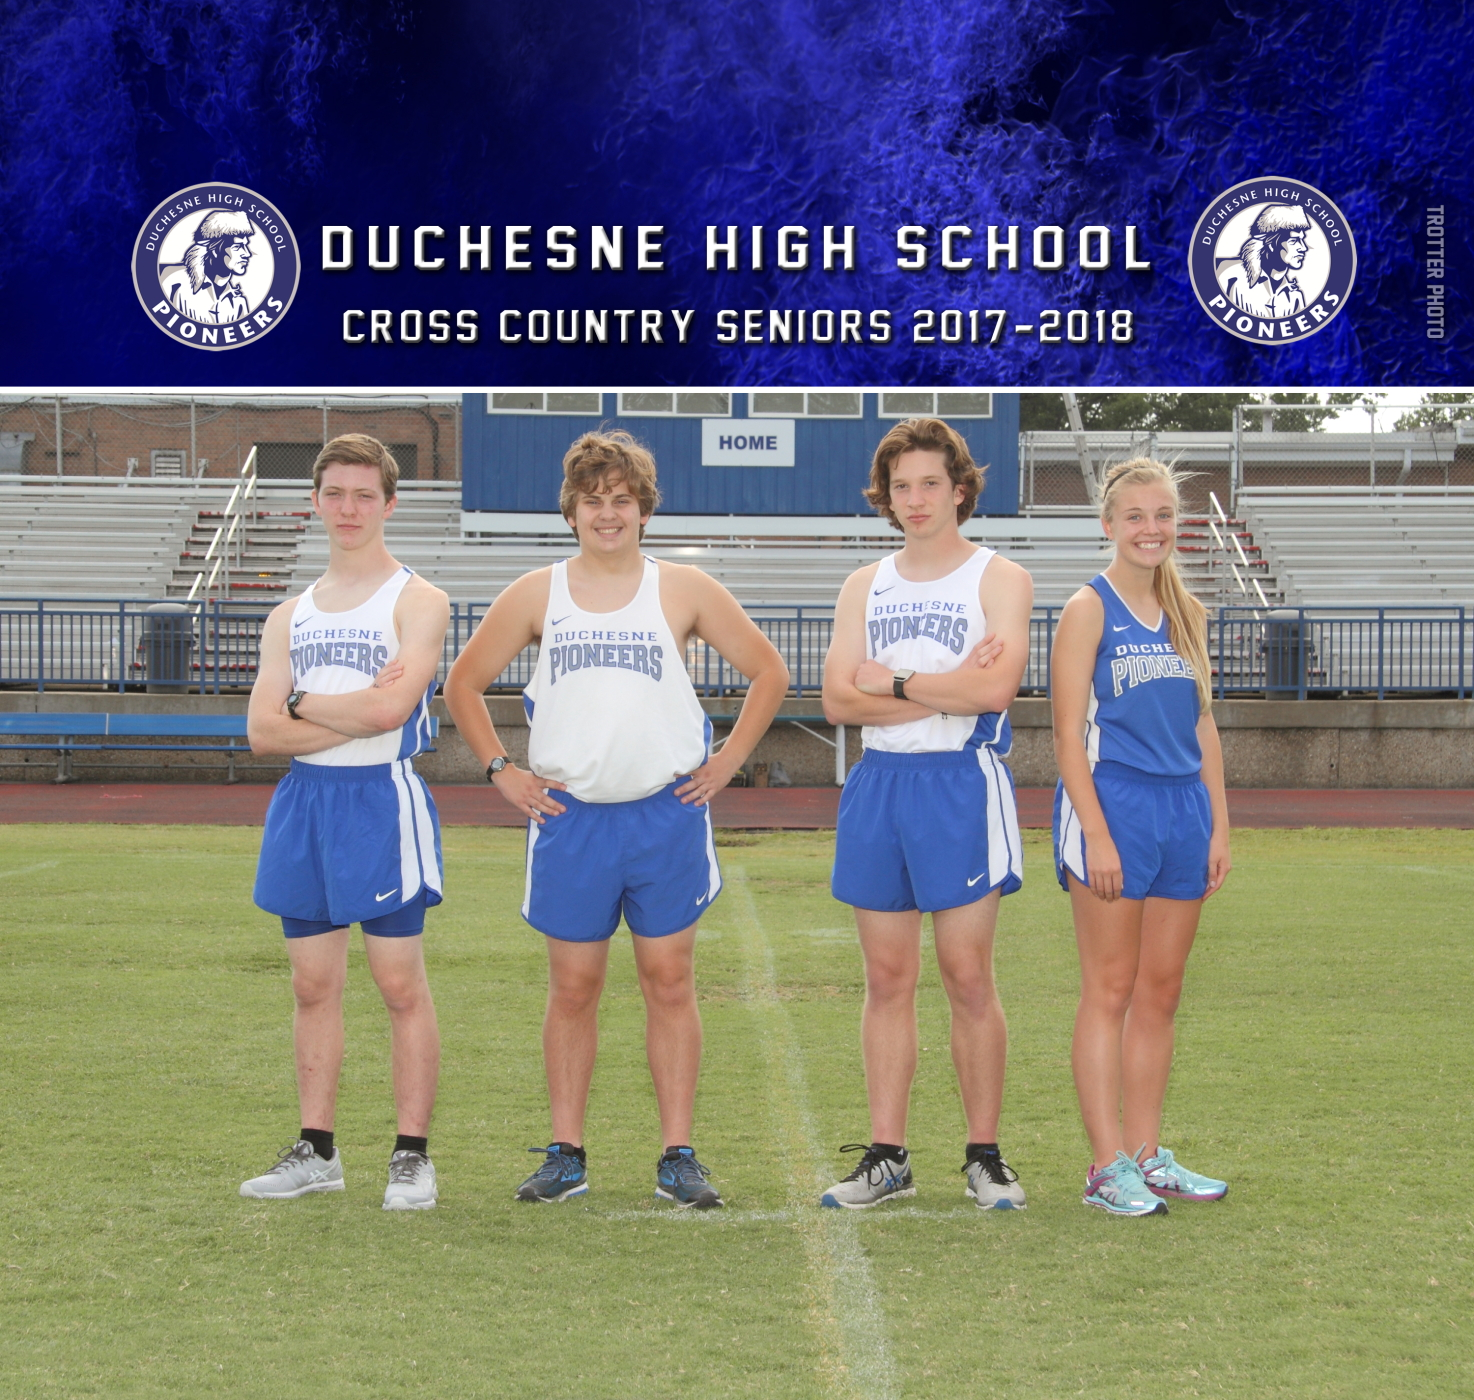 Duchesne High School Soccer Schedule Duchesne High School Cross Country